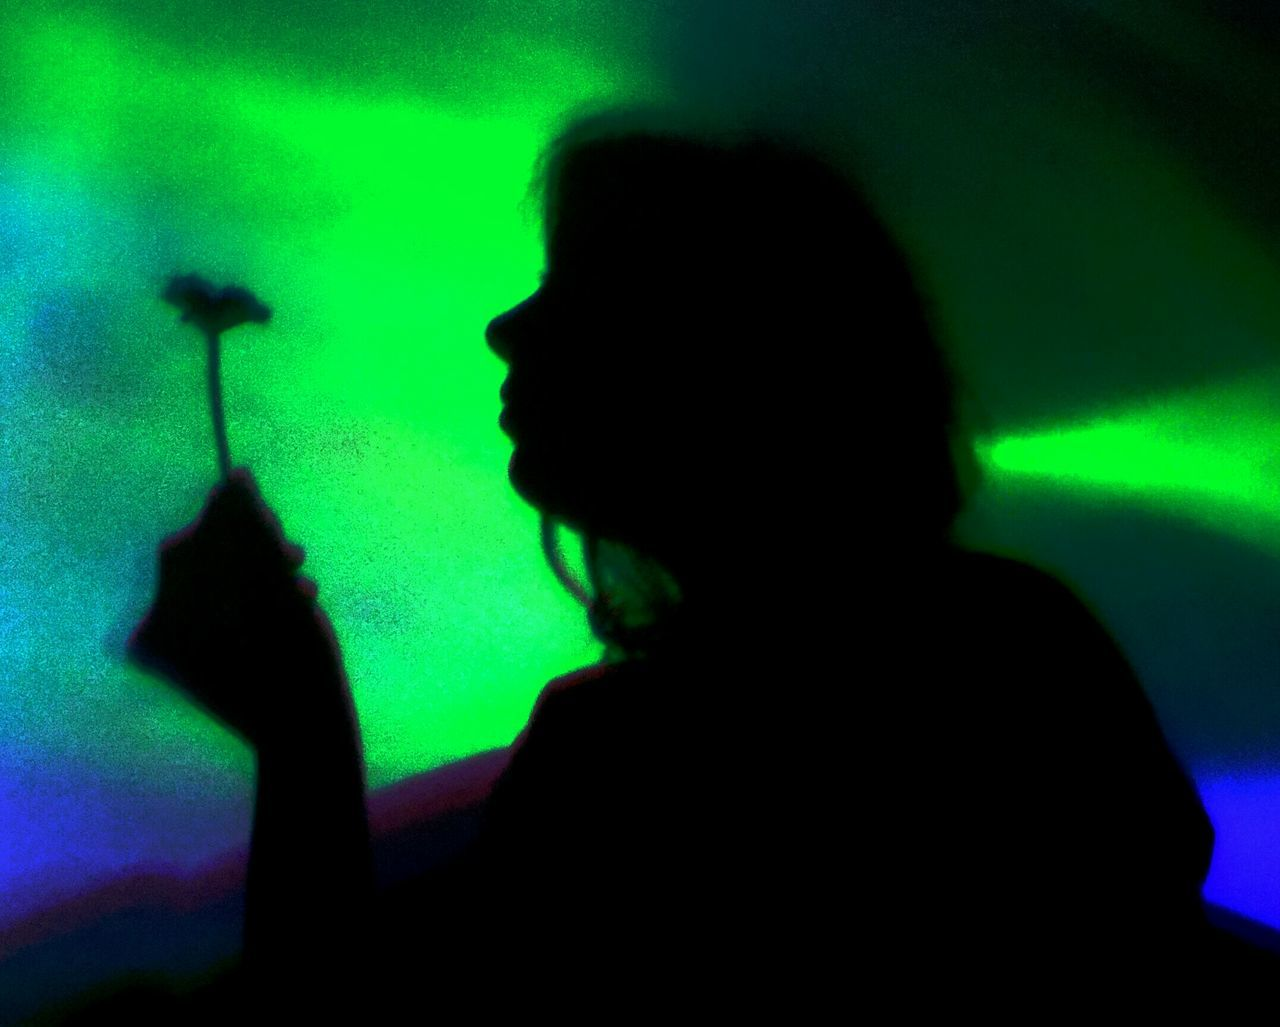 silhouette, music, indoors, real people, one person, arts culture and entertainment, green color, lifestyles, shadow, musician, illuminated, musical instrument, rock music, close-up, day, people